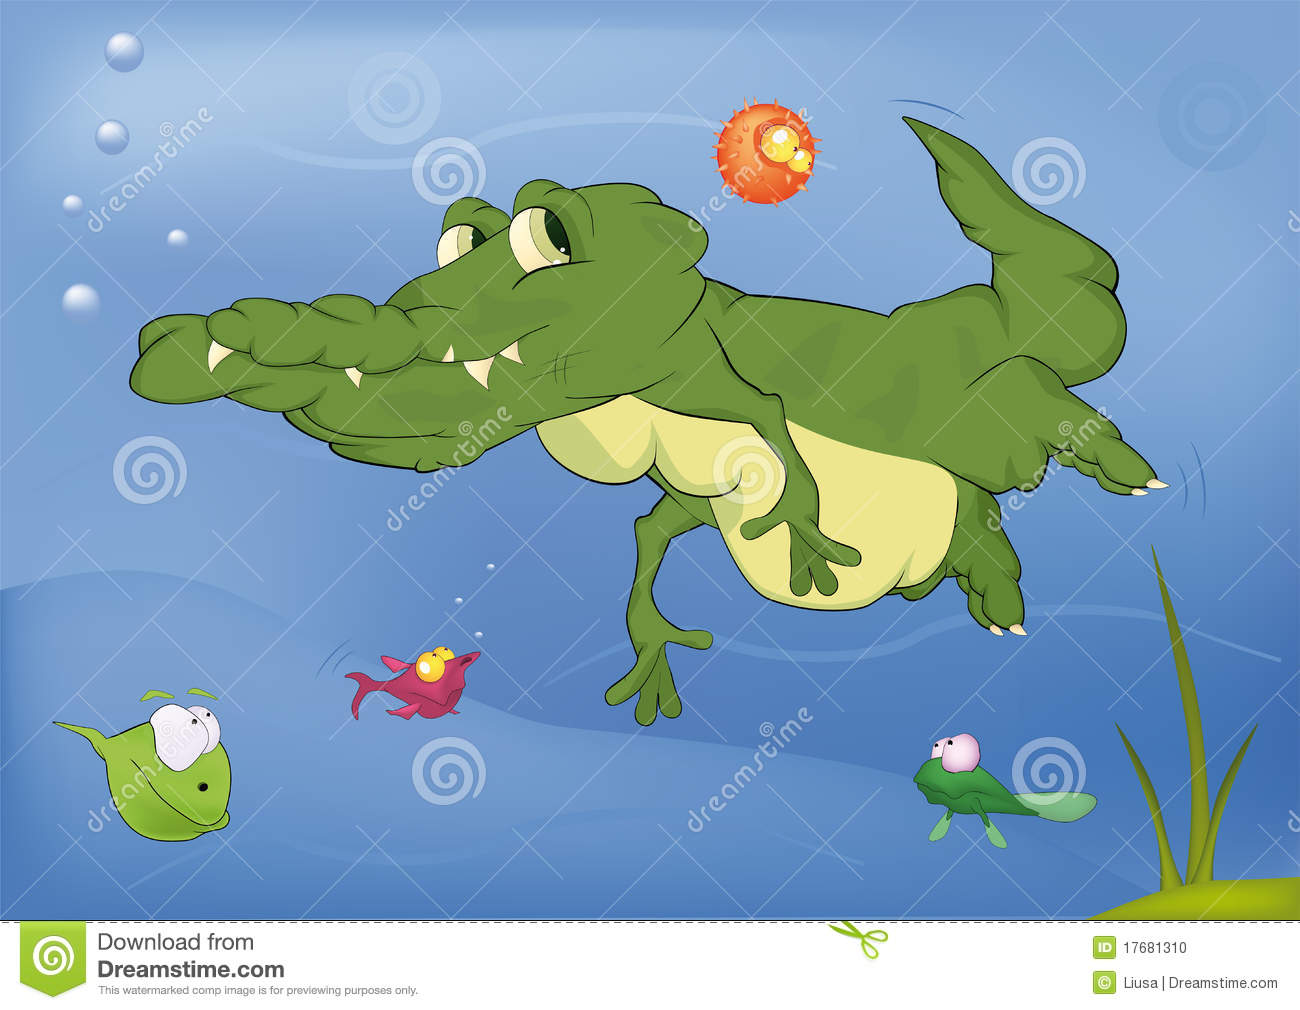 Crocodile and small fishes